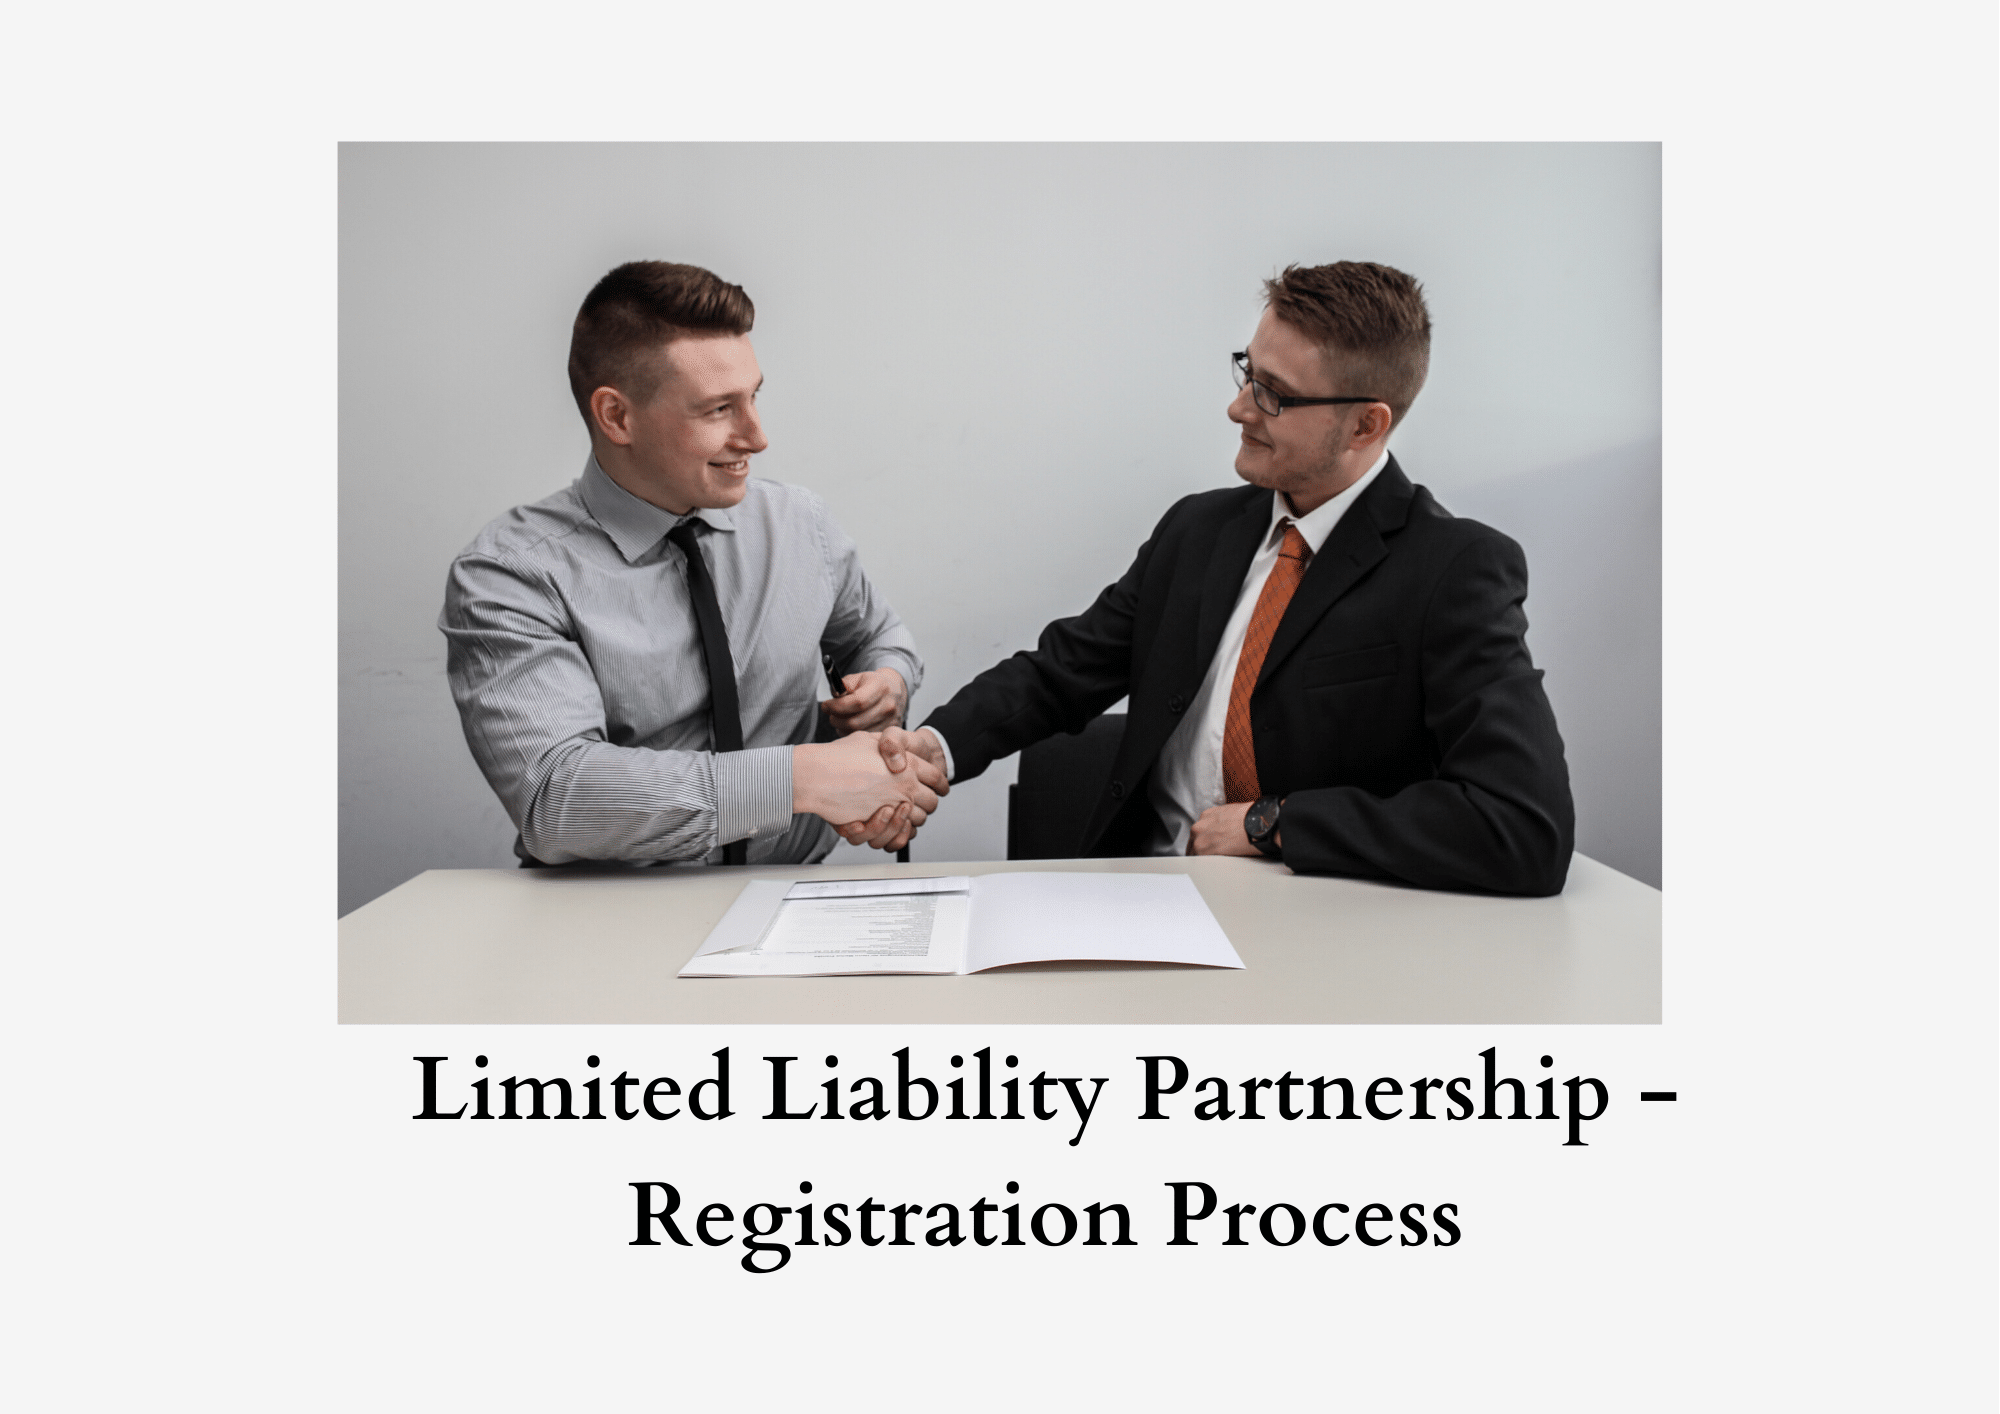 Process of LLP registration